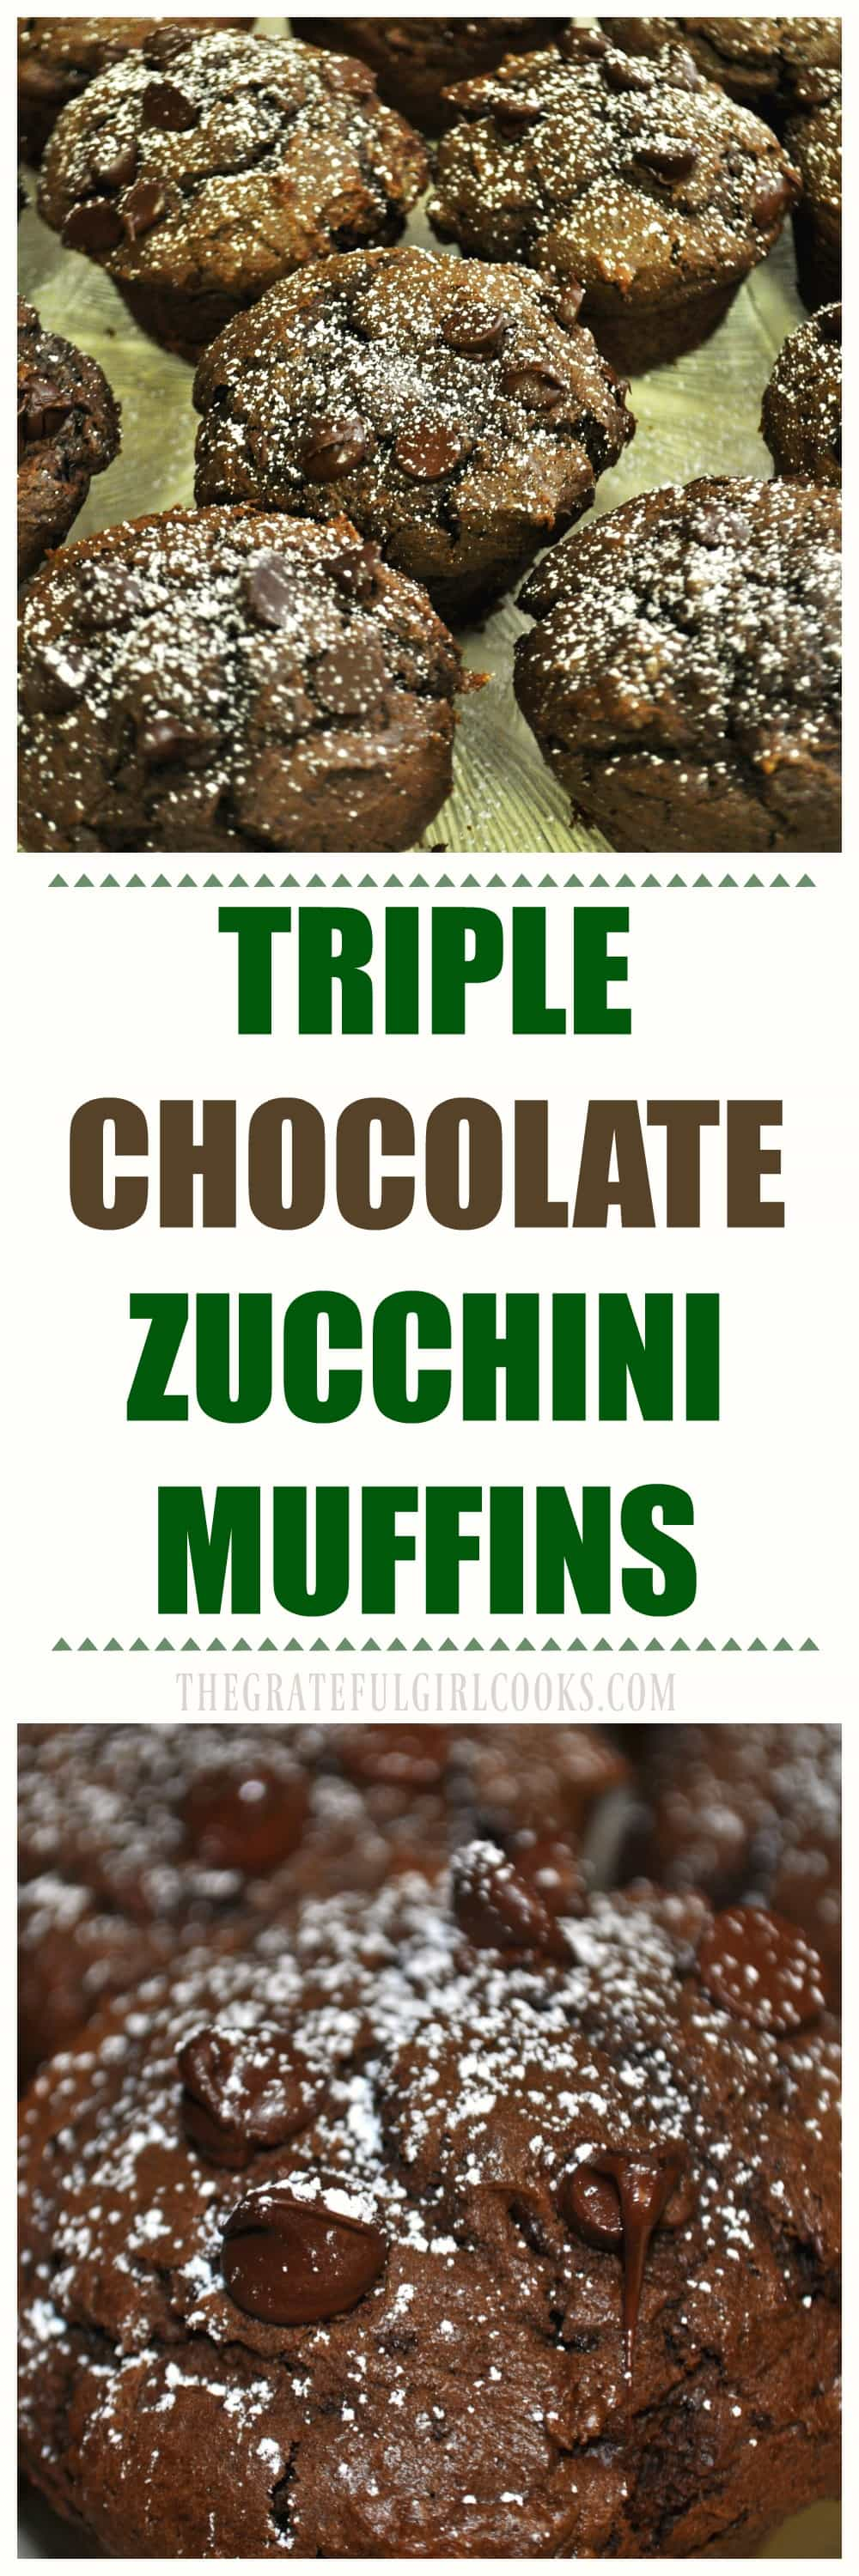 Triple Chocolate Zucchini Muffins / The Grateful Girl Cooks!